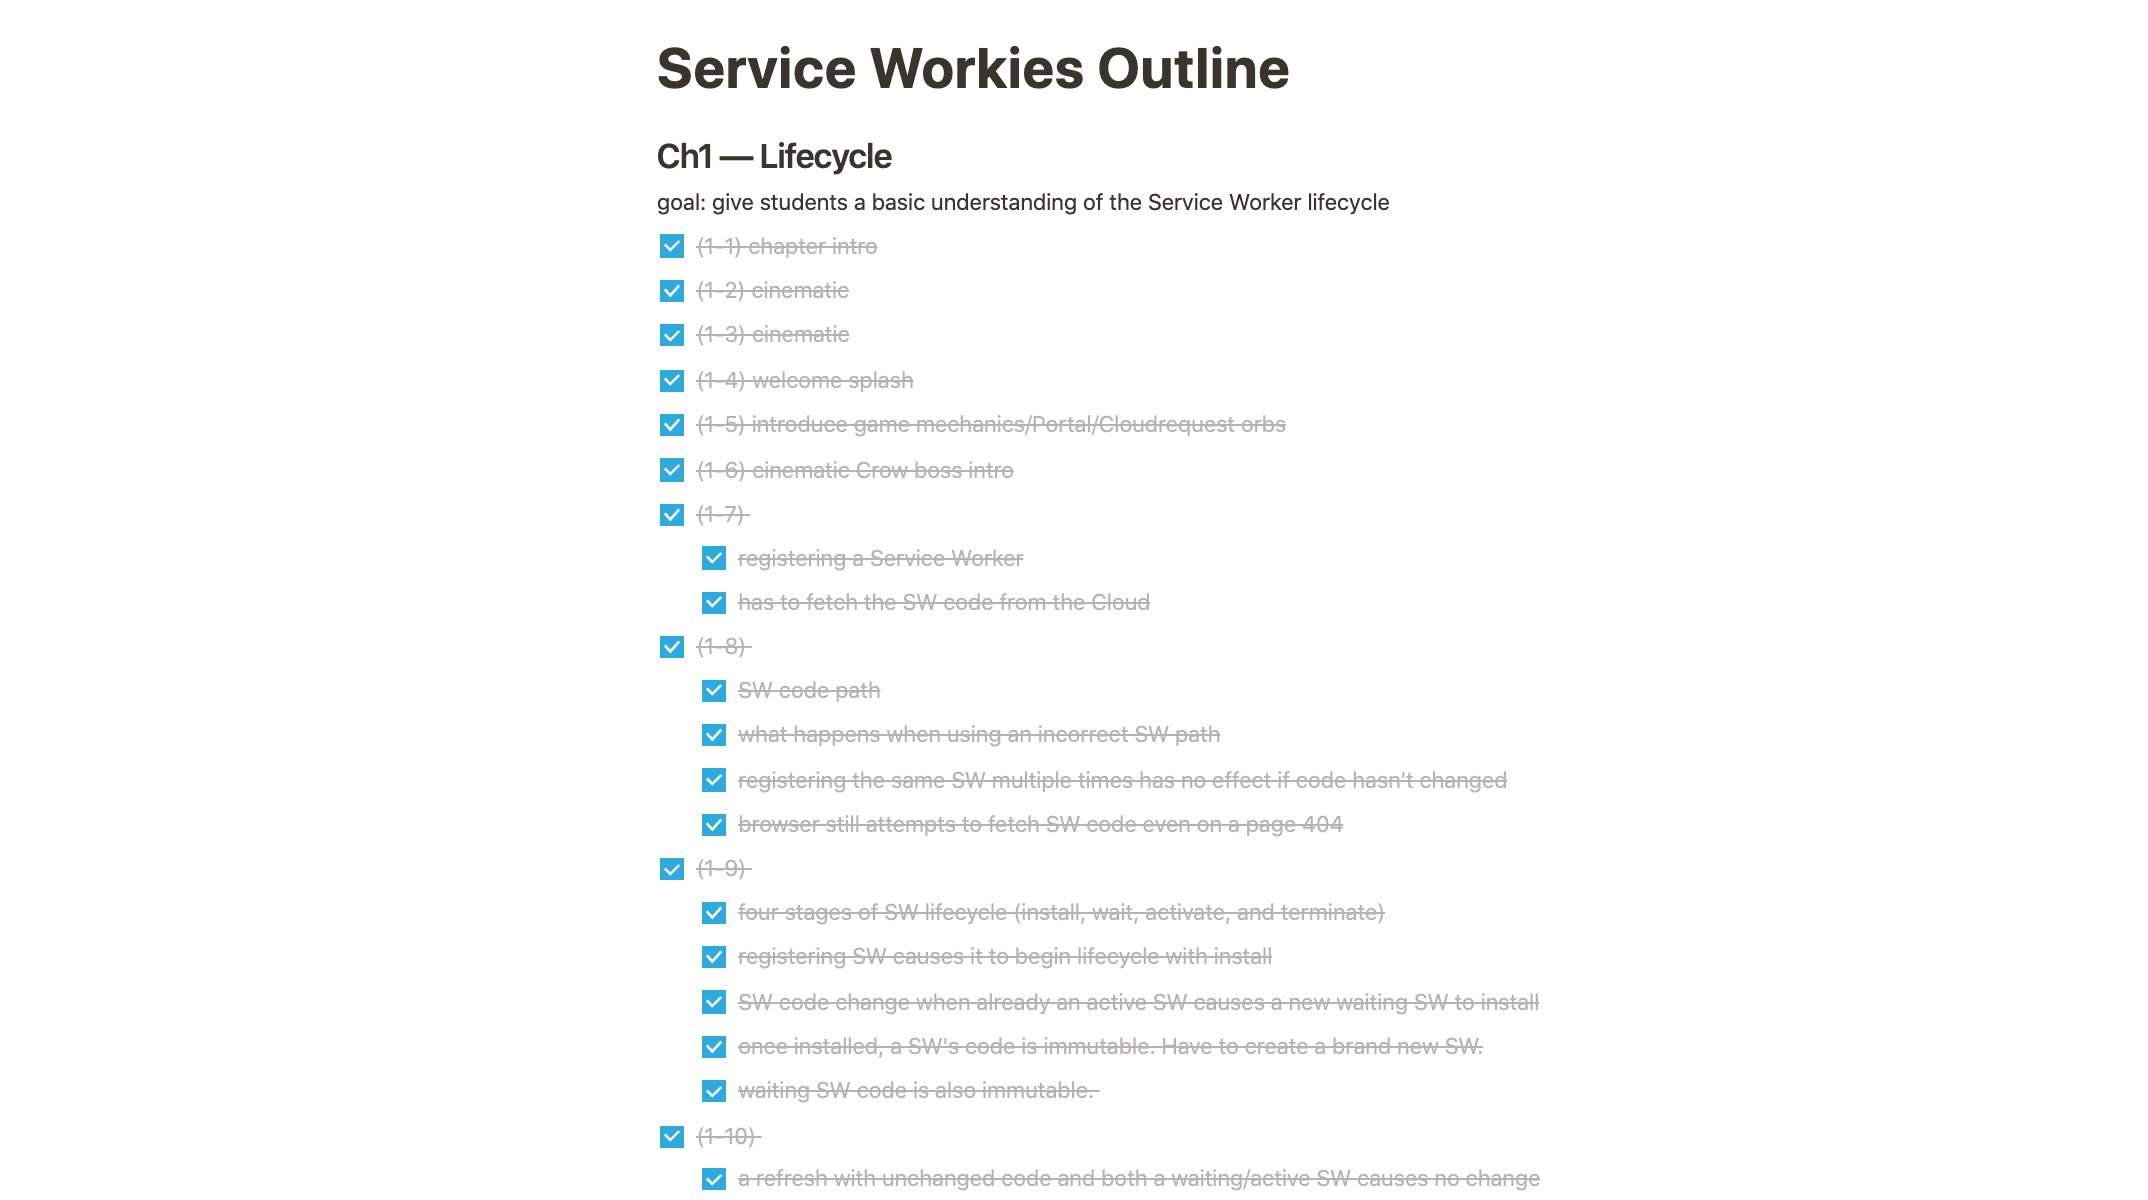 Service Workies Outline